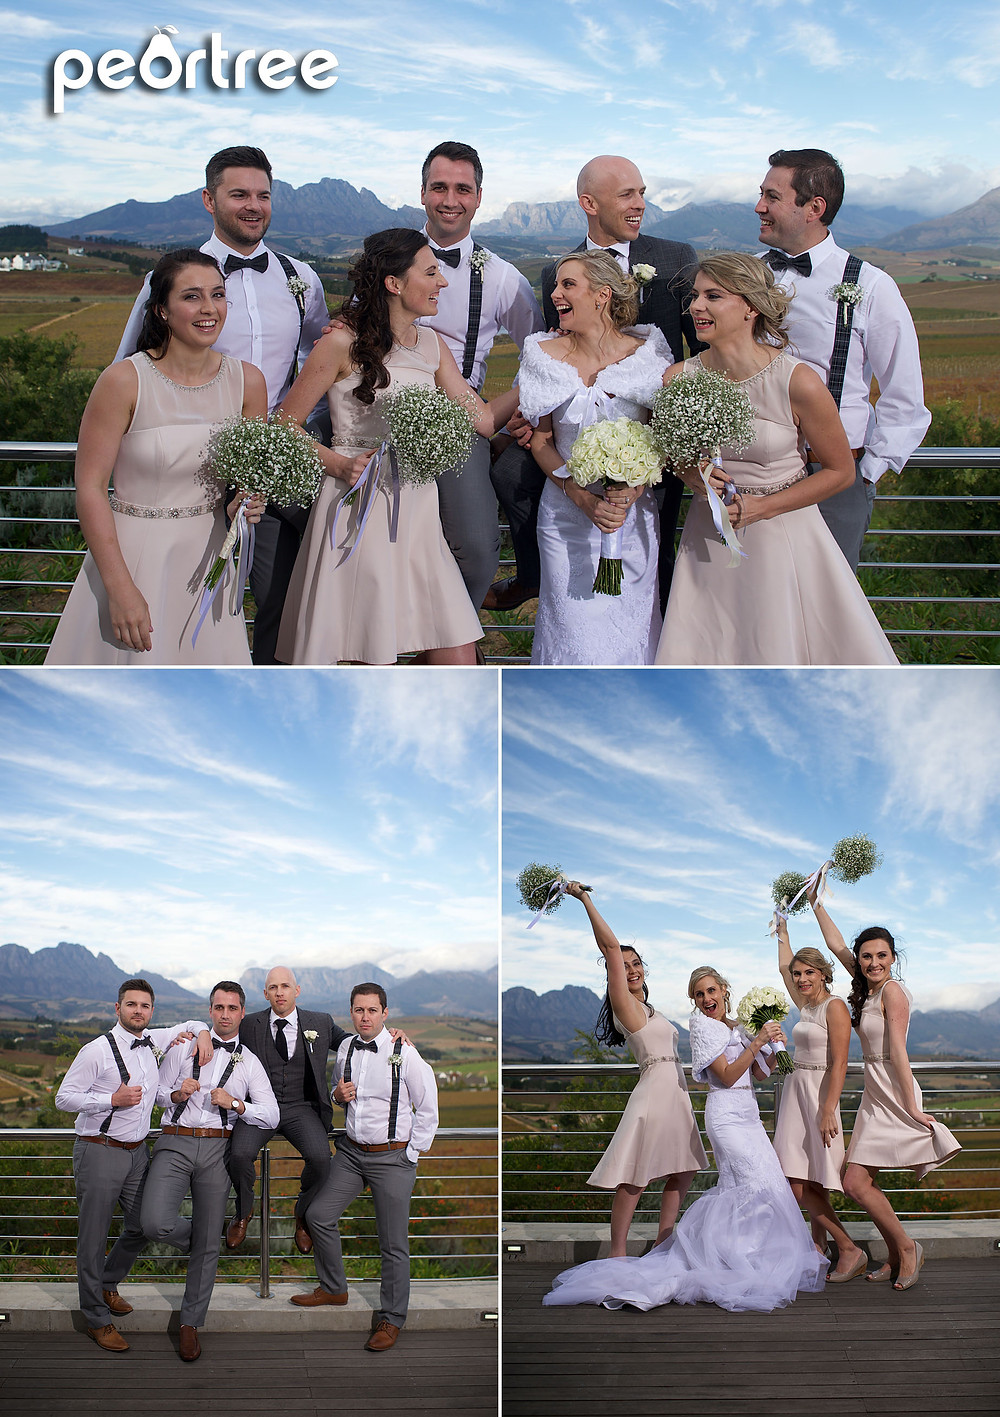 landtscap wedding view stellenbosch